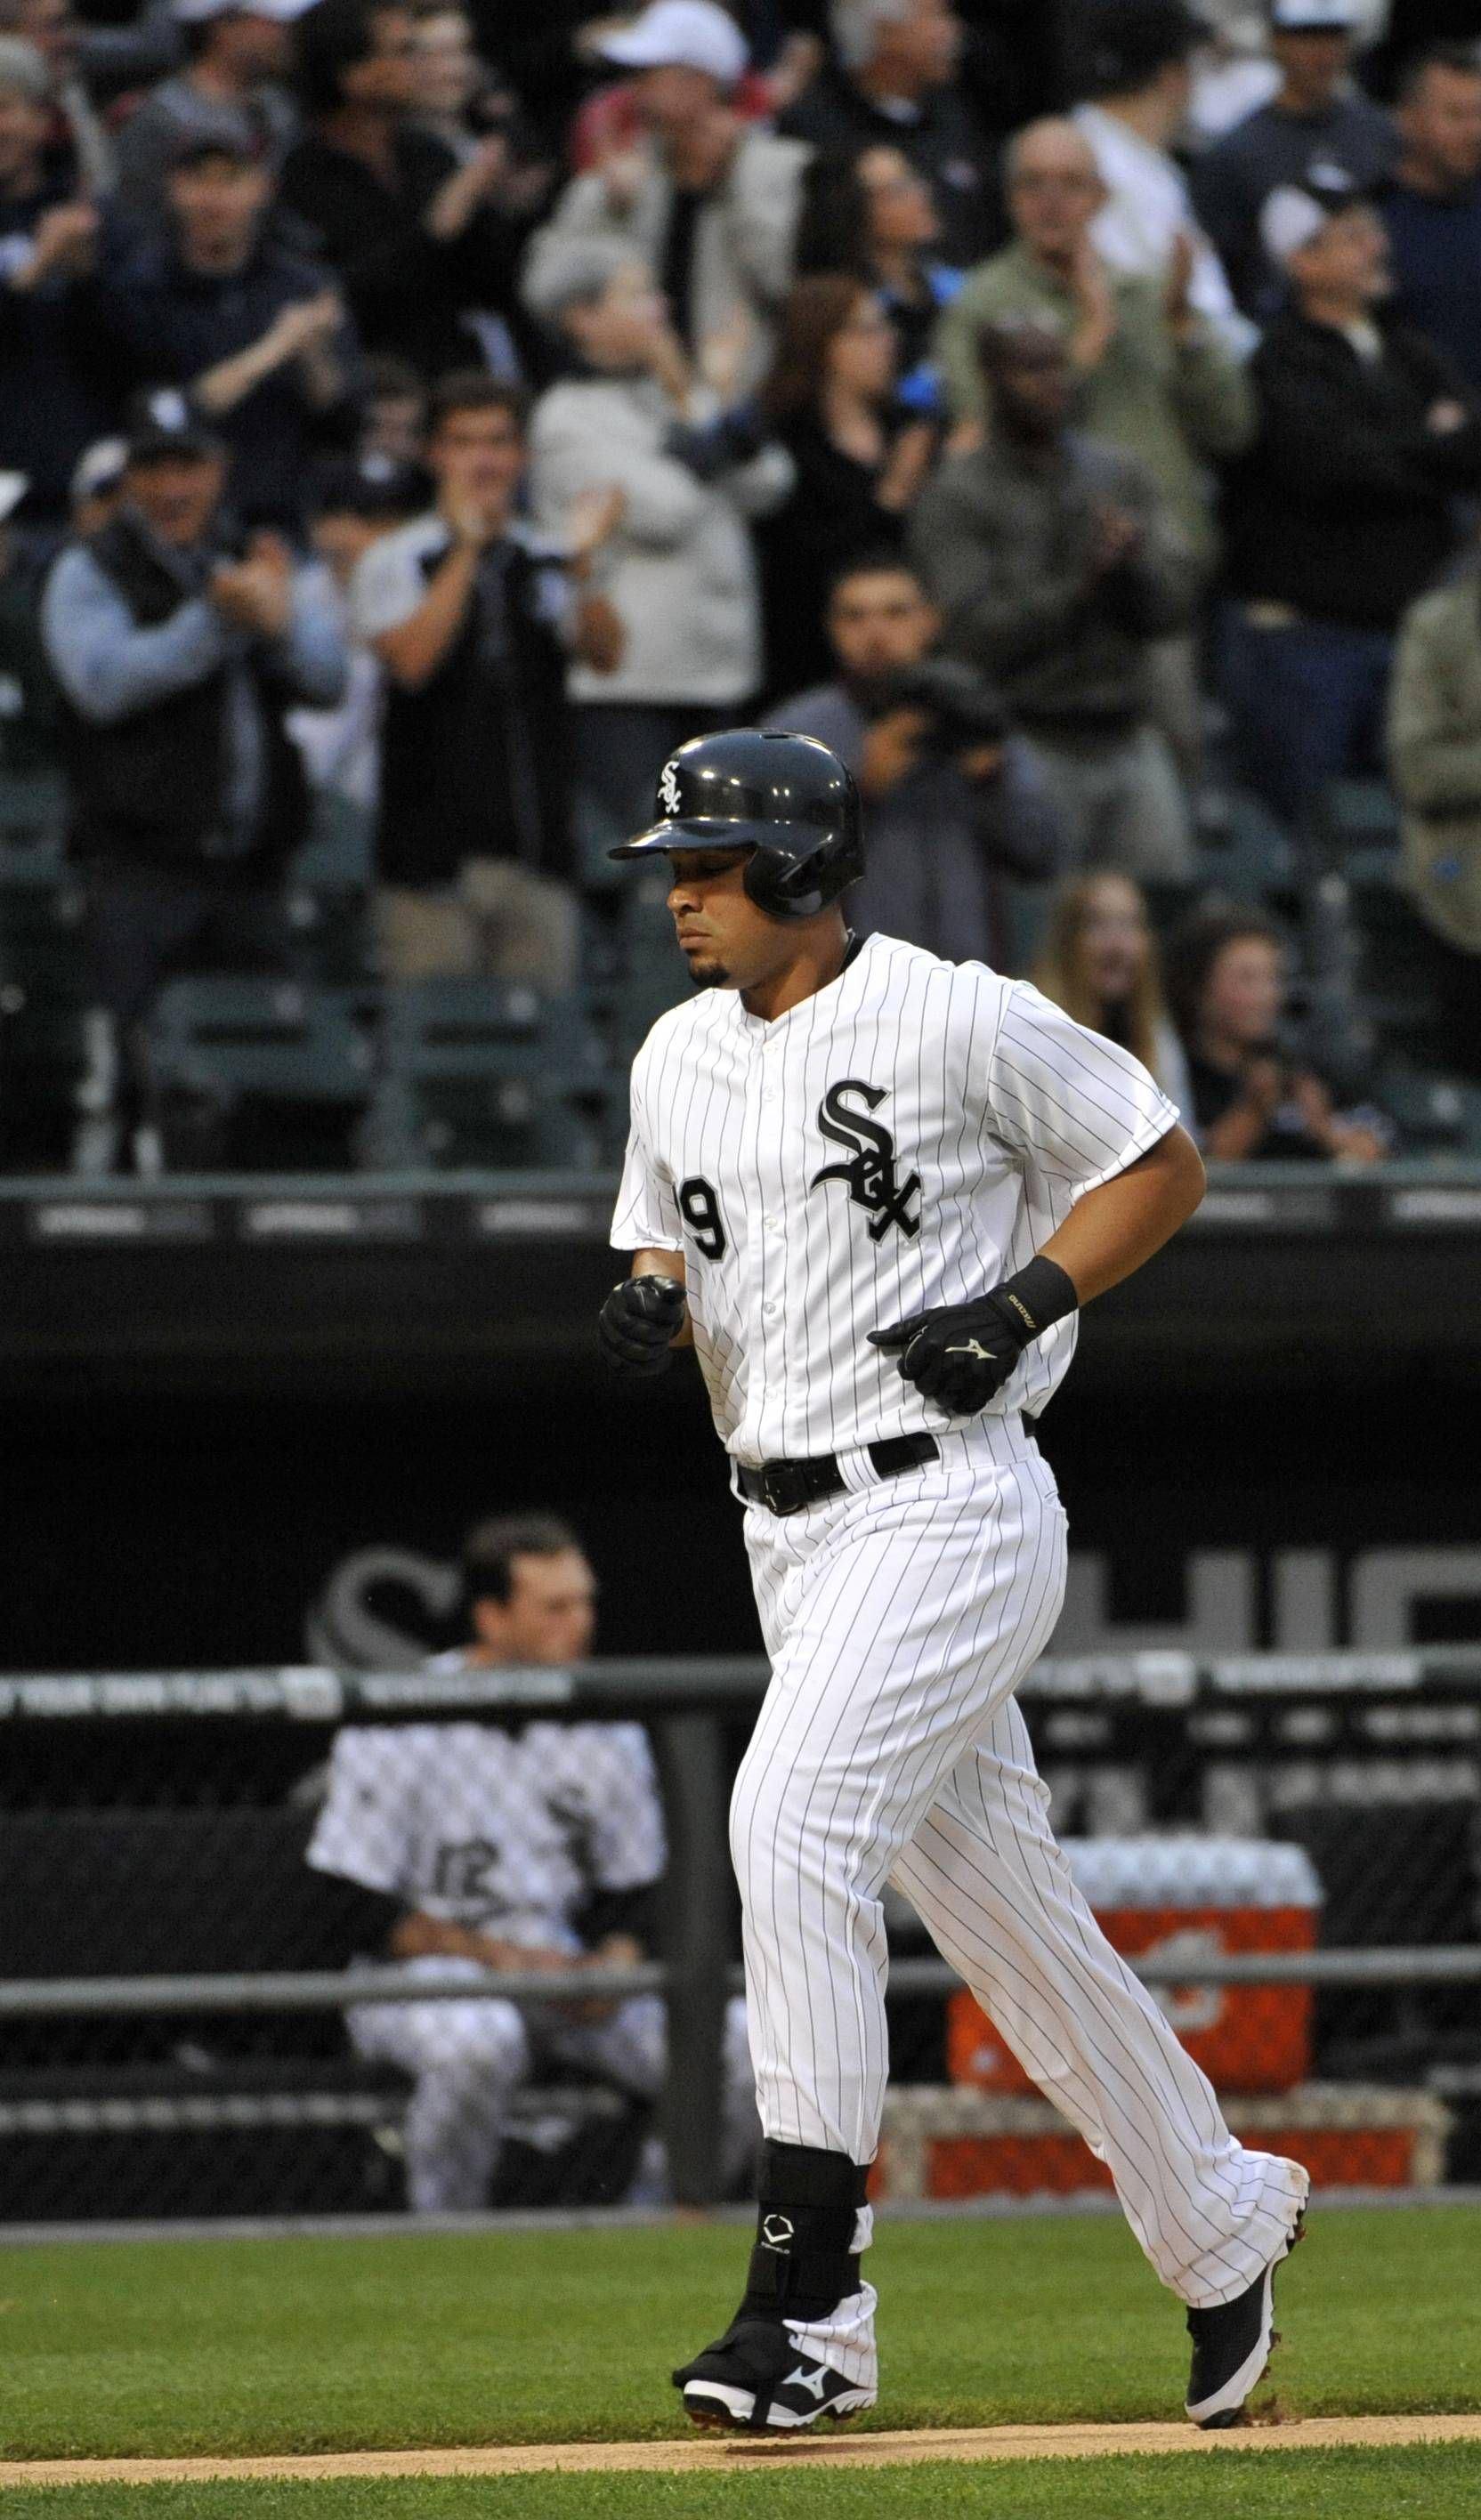 Big series or not, White Sox are winning